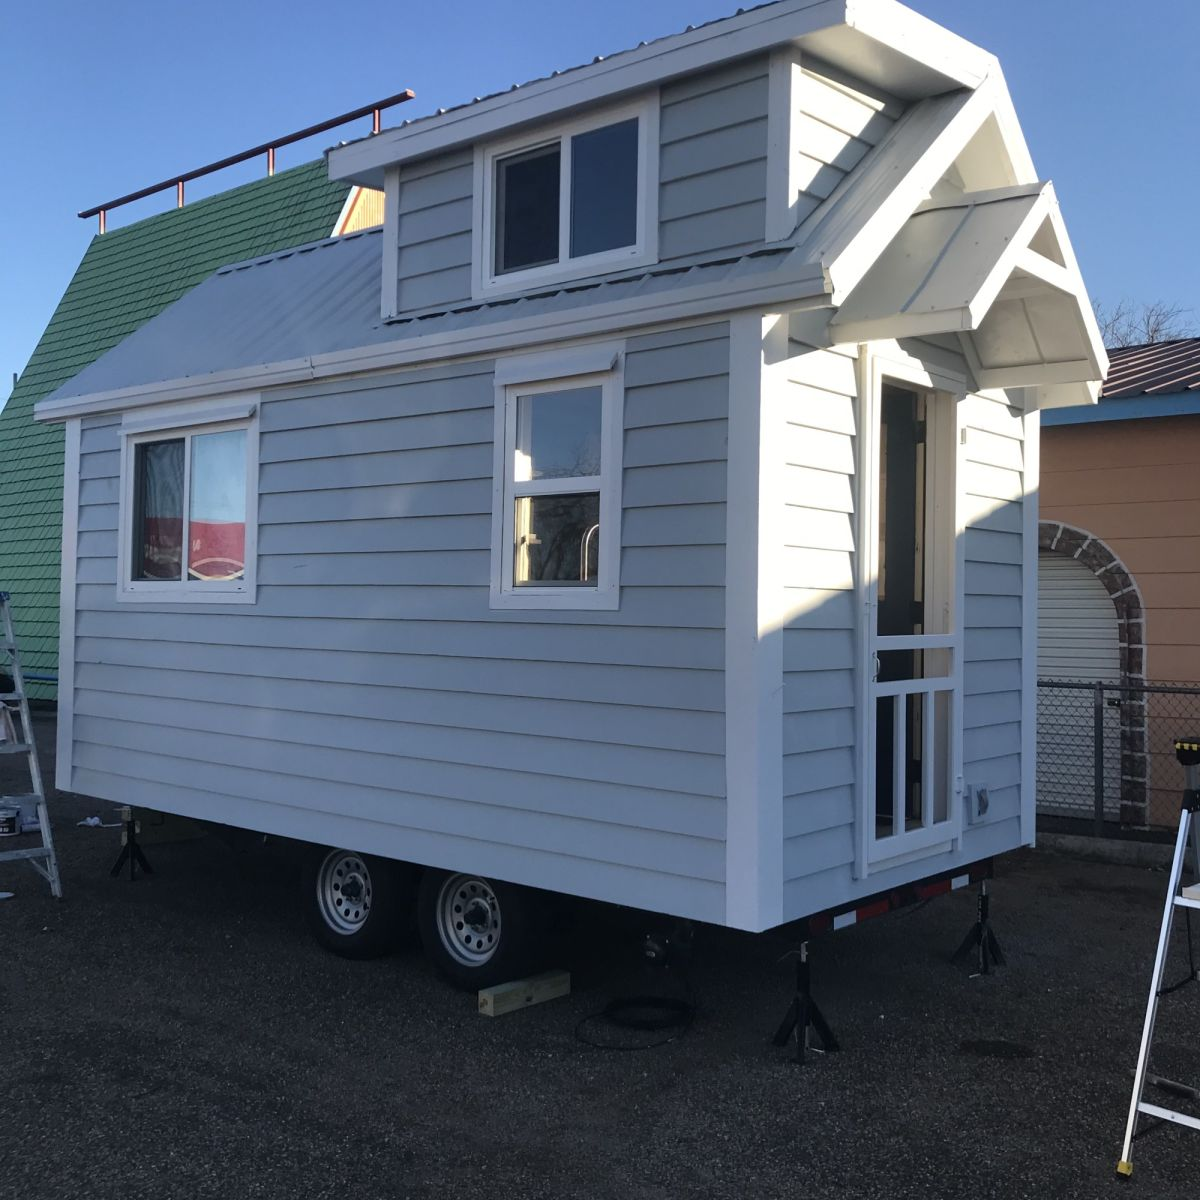 23x23 Tiny Home on wheels built oct 23 - Tiny House for Sale in Dallas,  Texas - Tiny House Listings